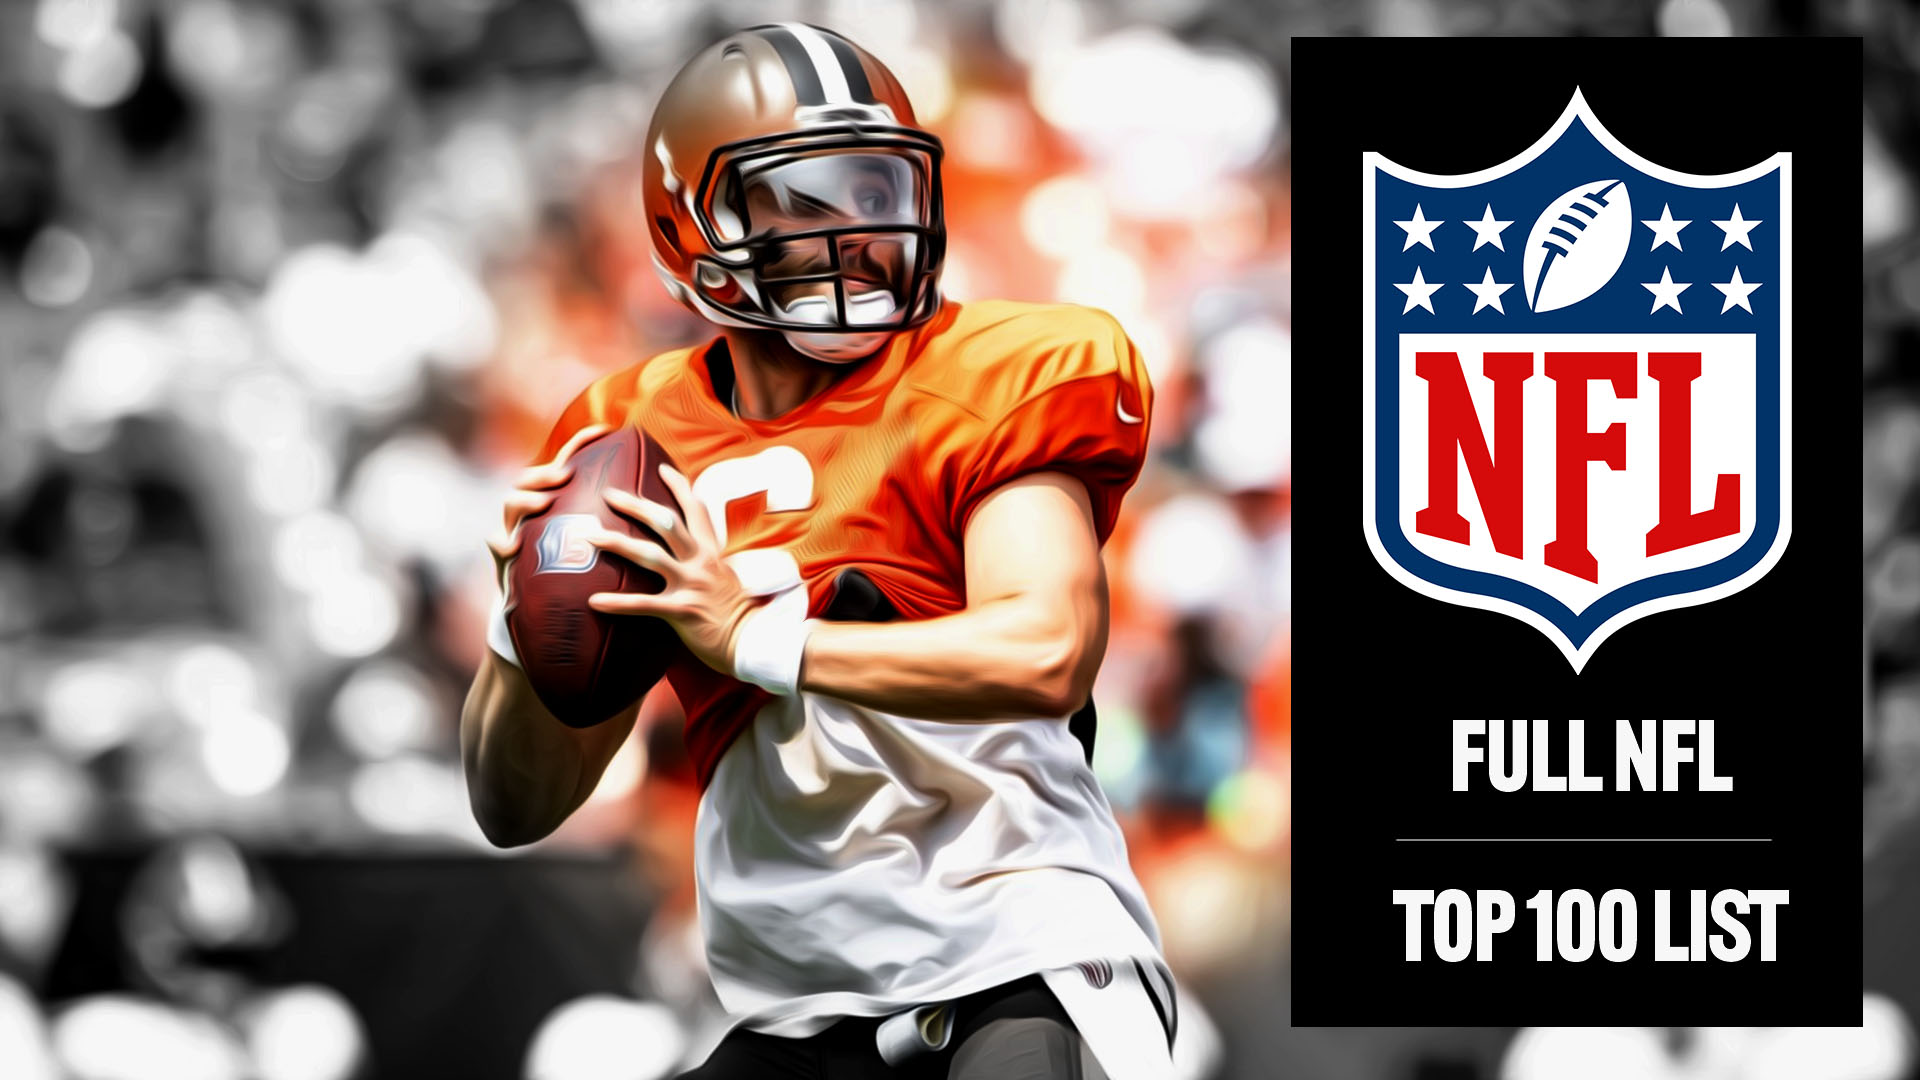 Full NFL Top 100 list- Check who's voted as the best in the league for 2021